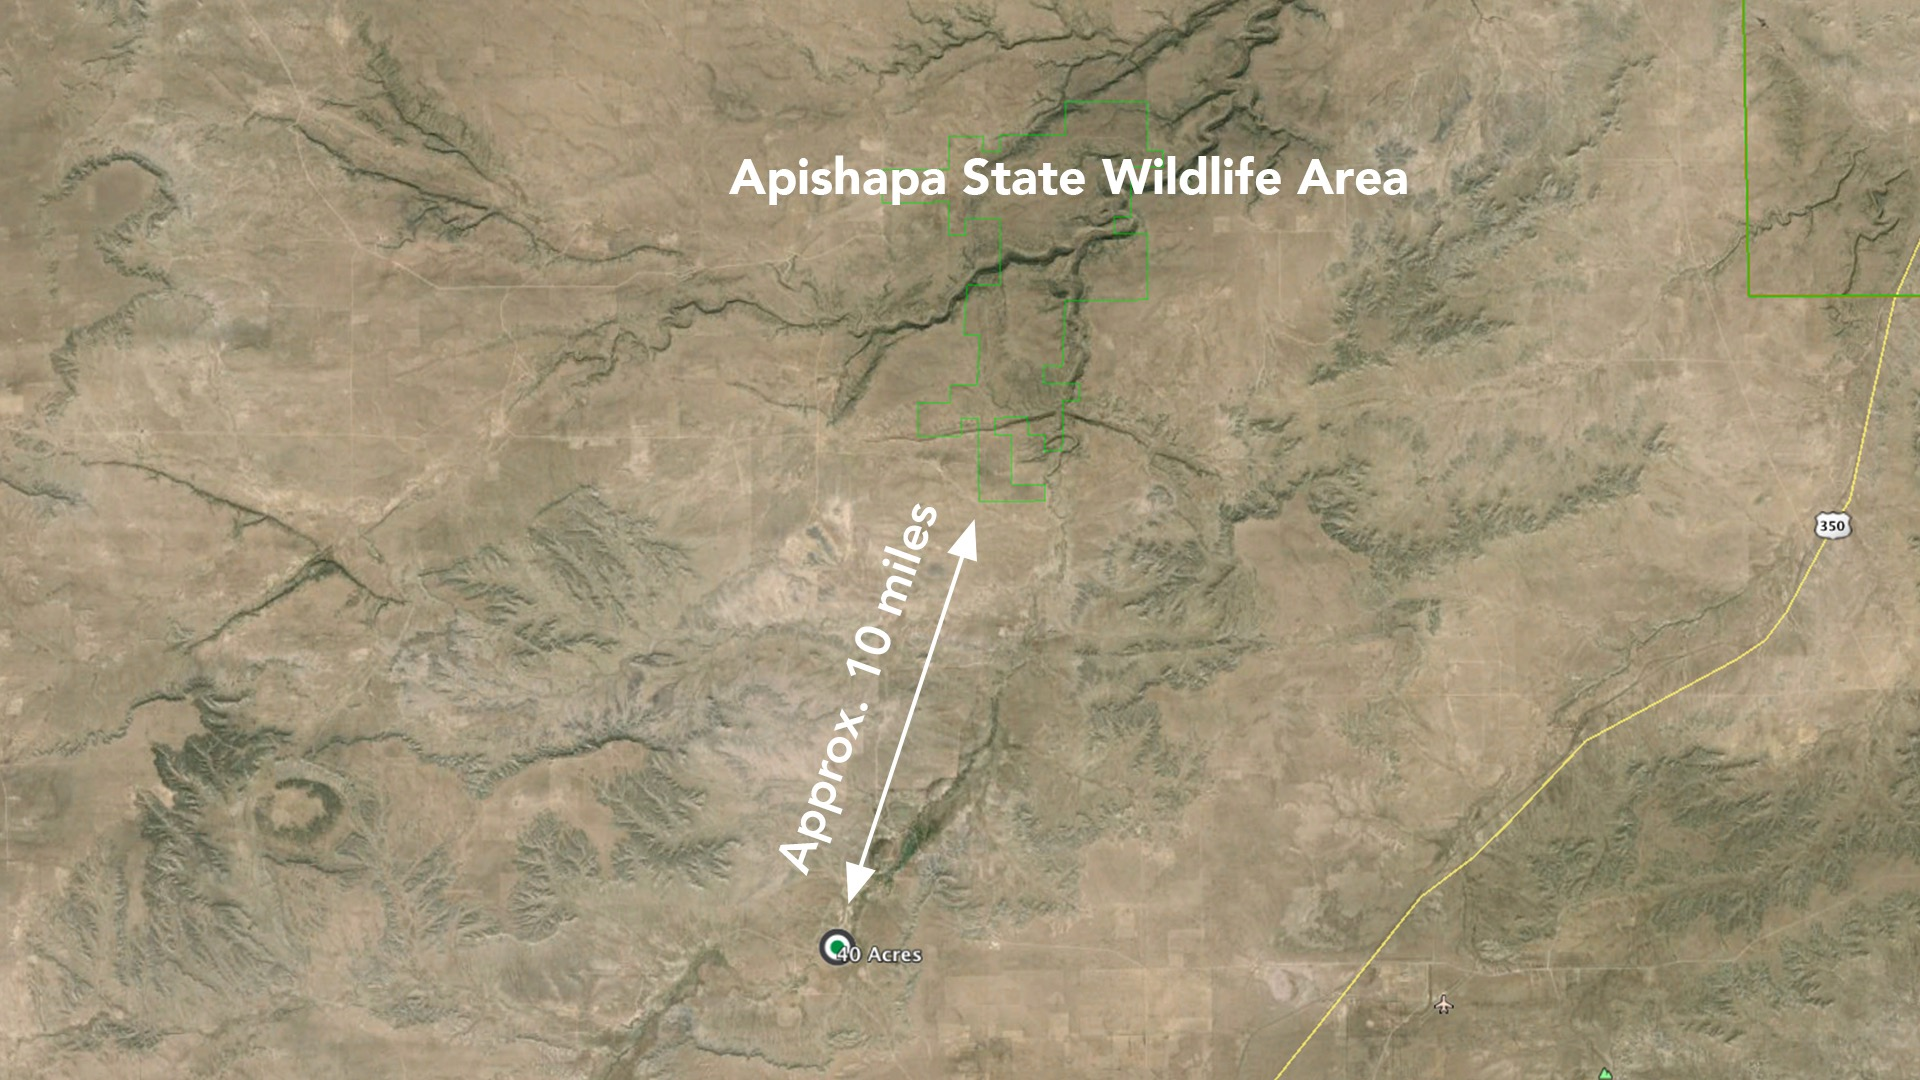 Approximately 10 miles to the Apishapa State Wildlife Area